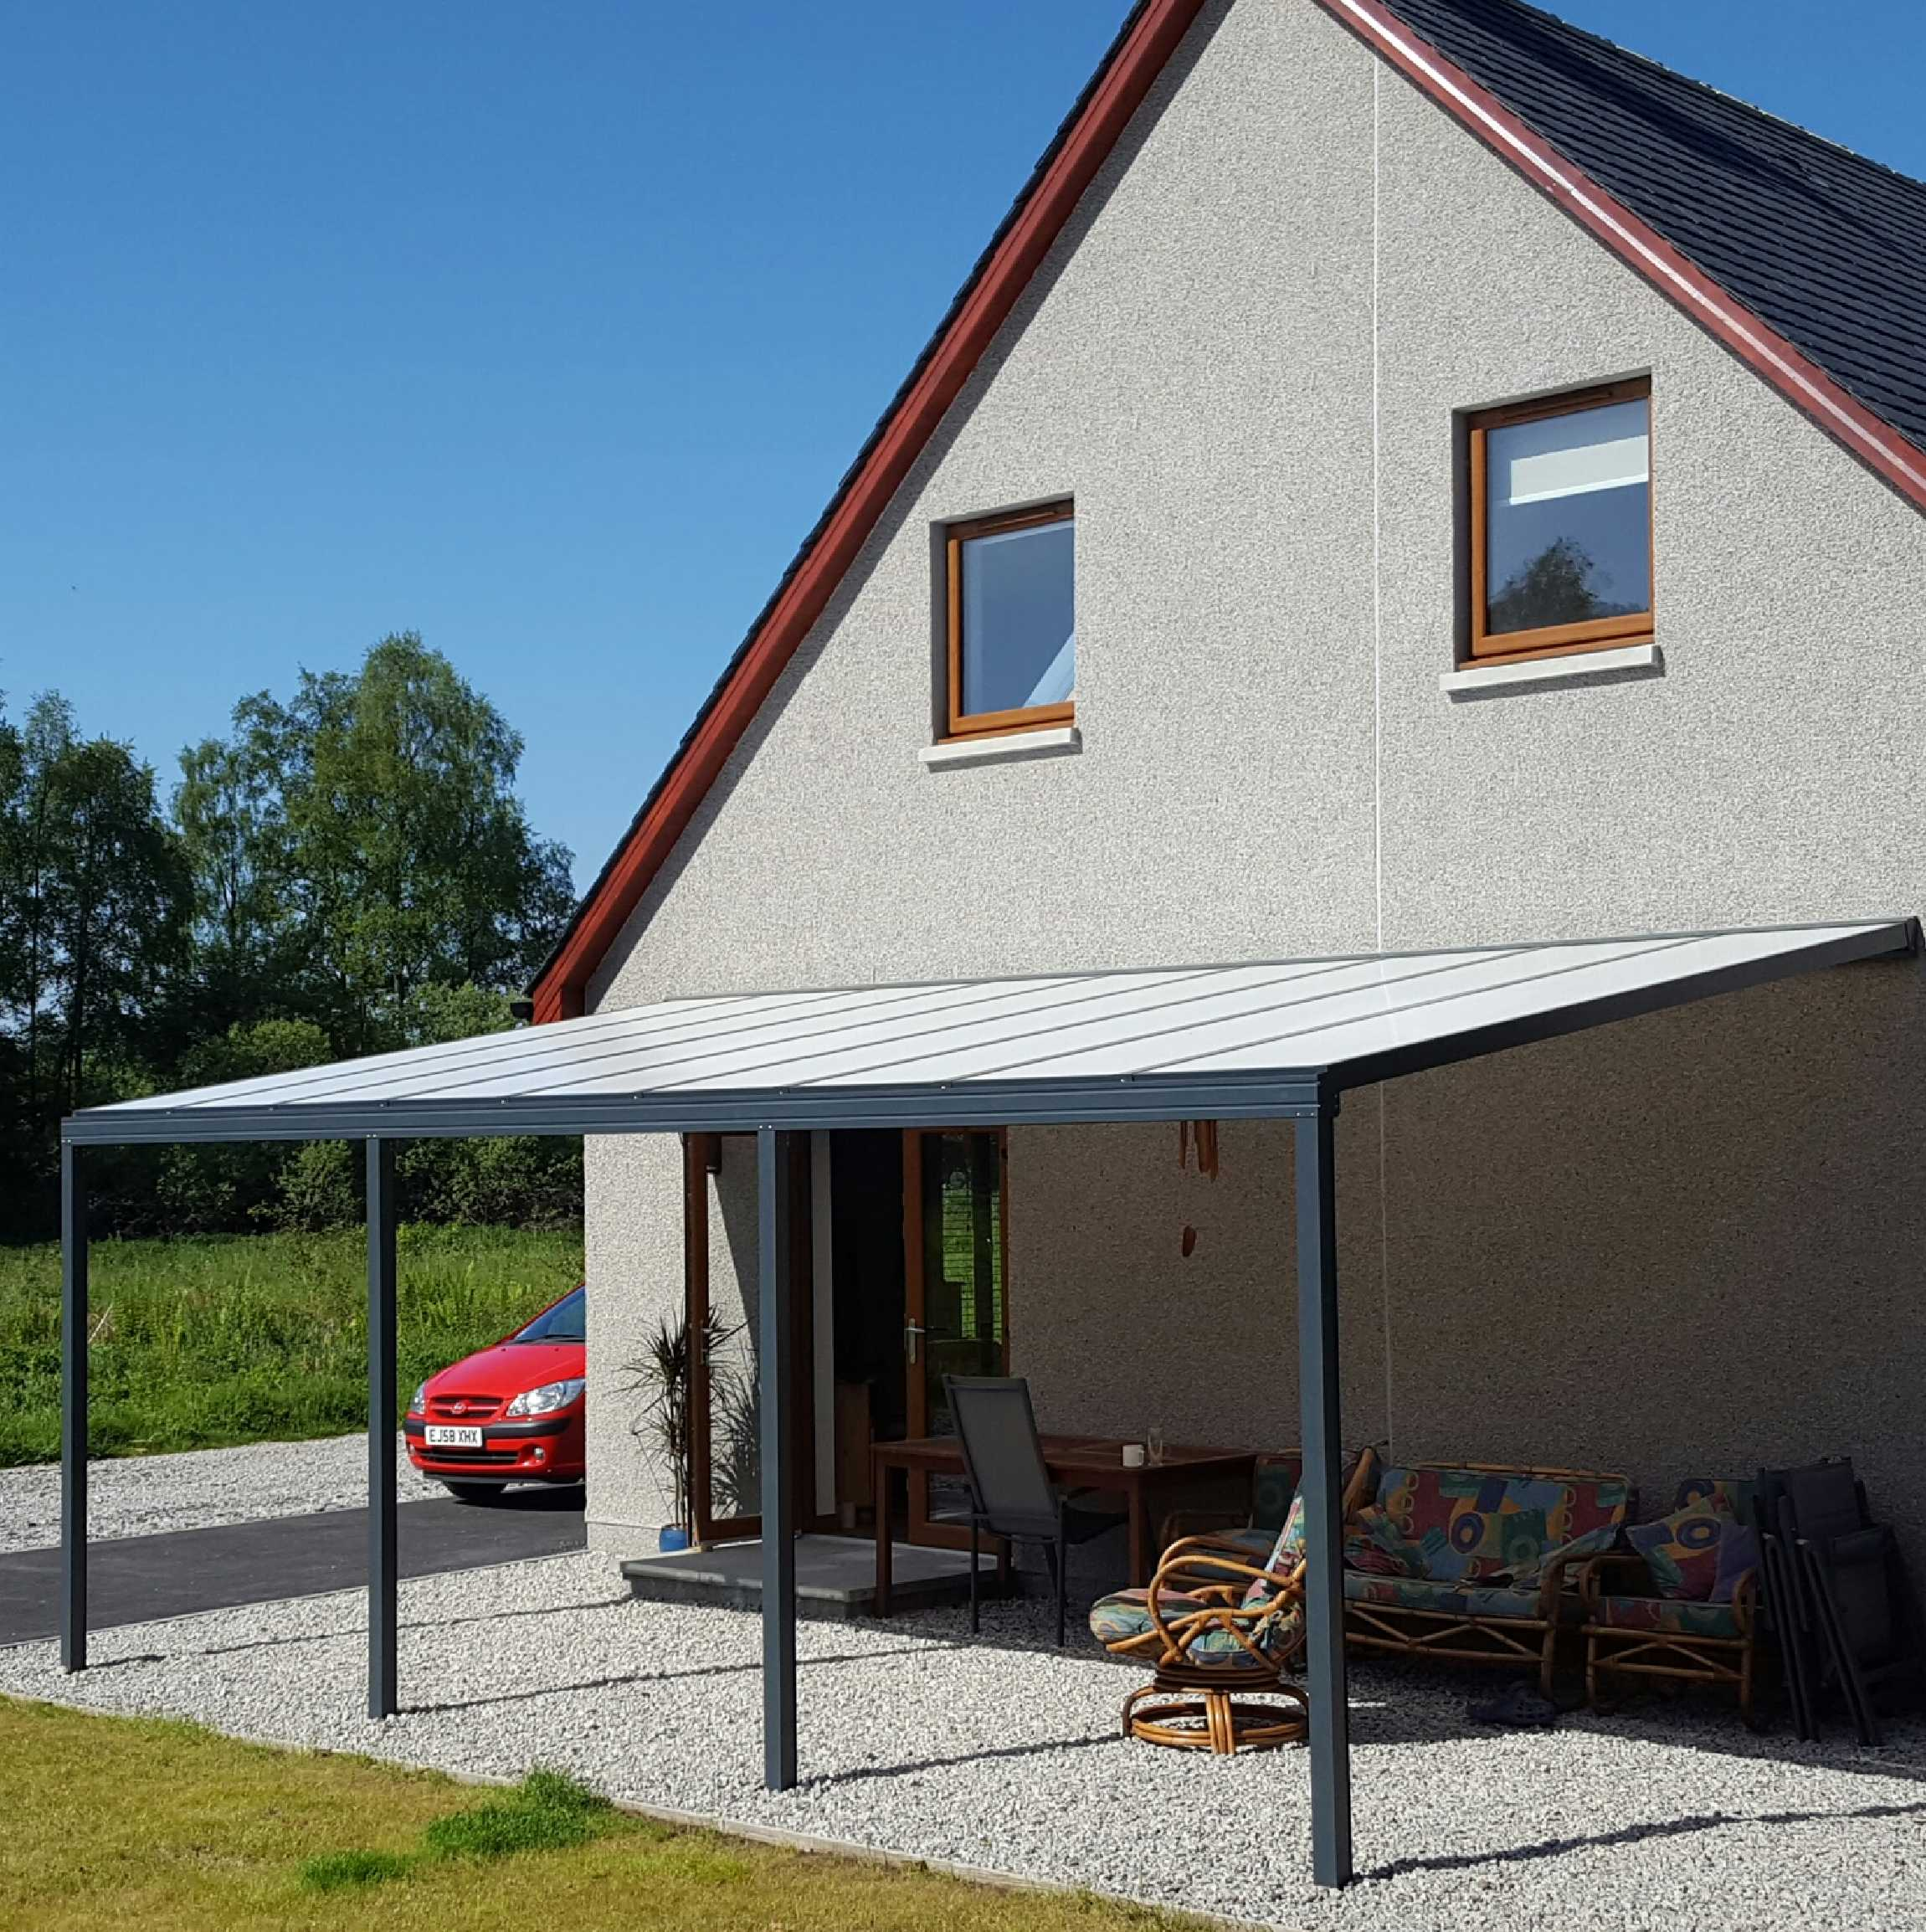 Great selection of Omega Smart Lean-To Canopy, Anthracite Grey, 16mm Polycarbonate Glazing - 4.2m (W) x 2.5m (P), (3) Supporting Posts